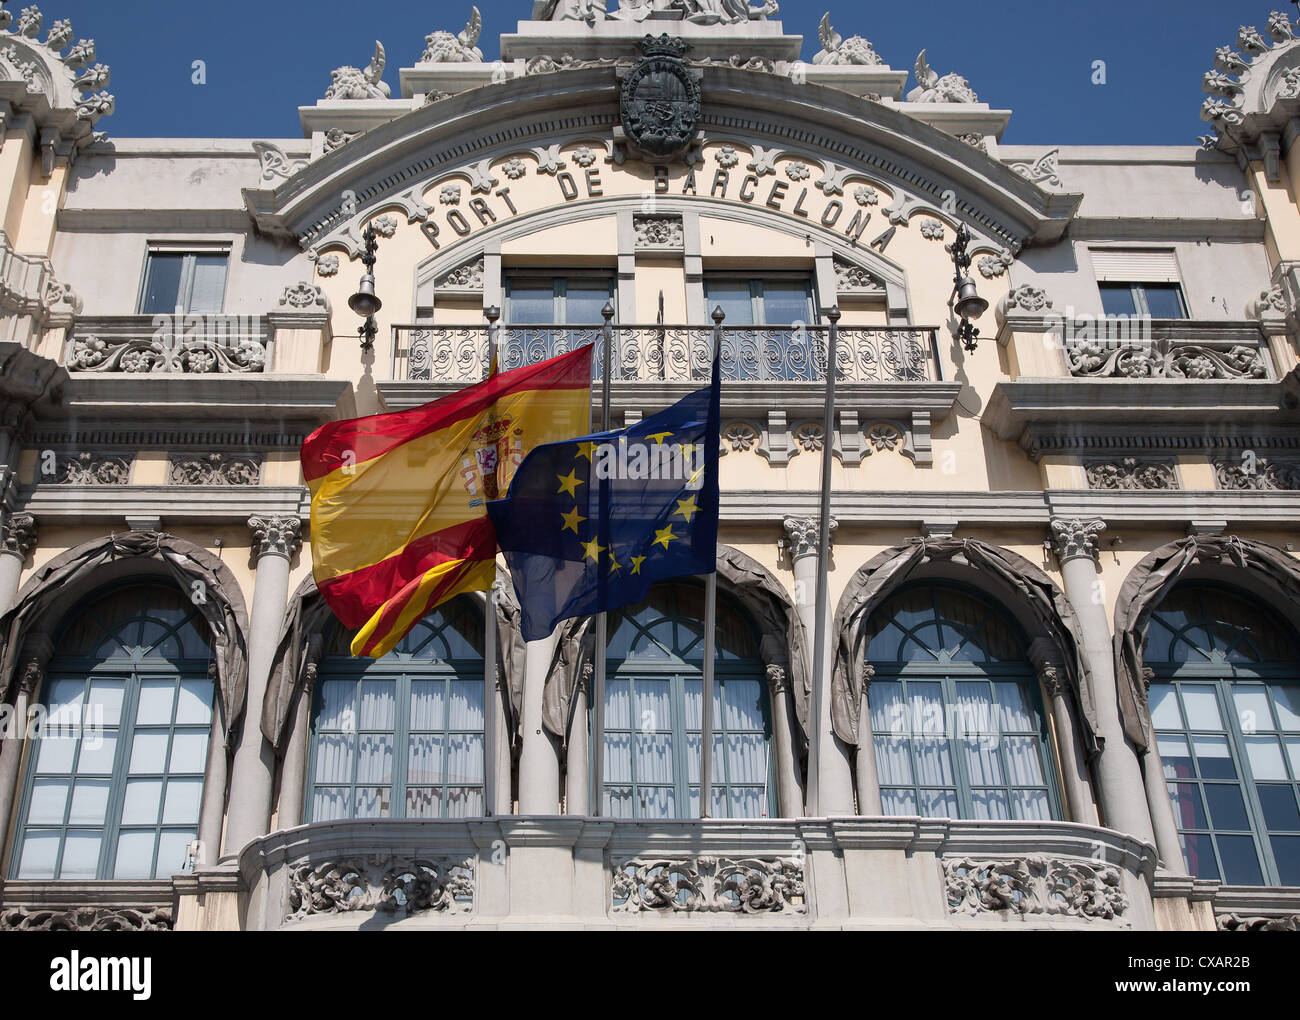 Old Barcelona Port Authority building (Port de Barcelona) at the base of Rambla del Mar, Barcelona, Catalonia, Spain, - Stock Image